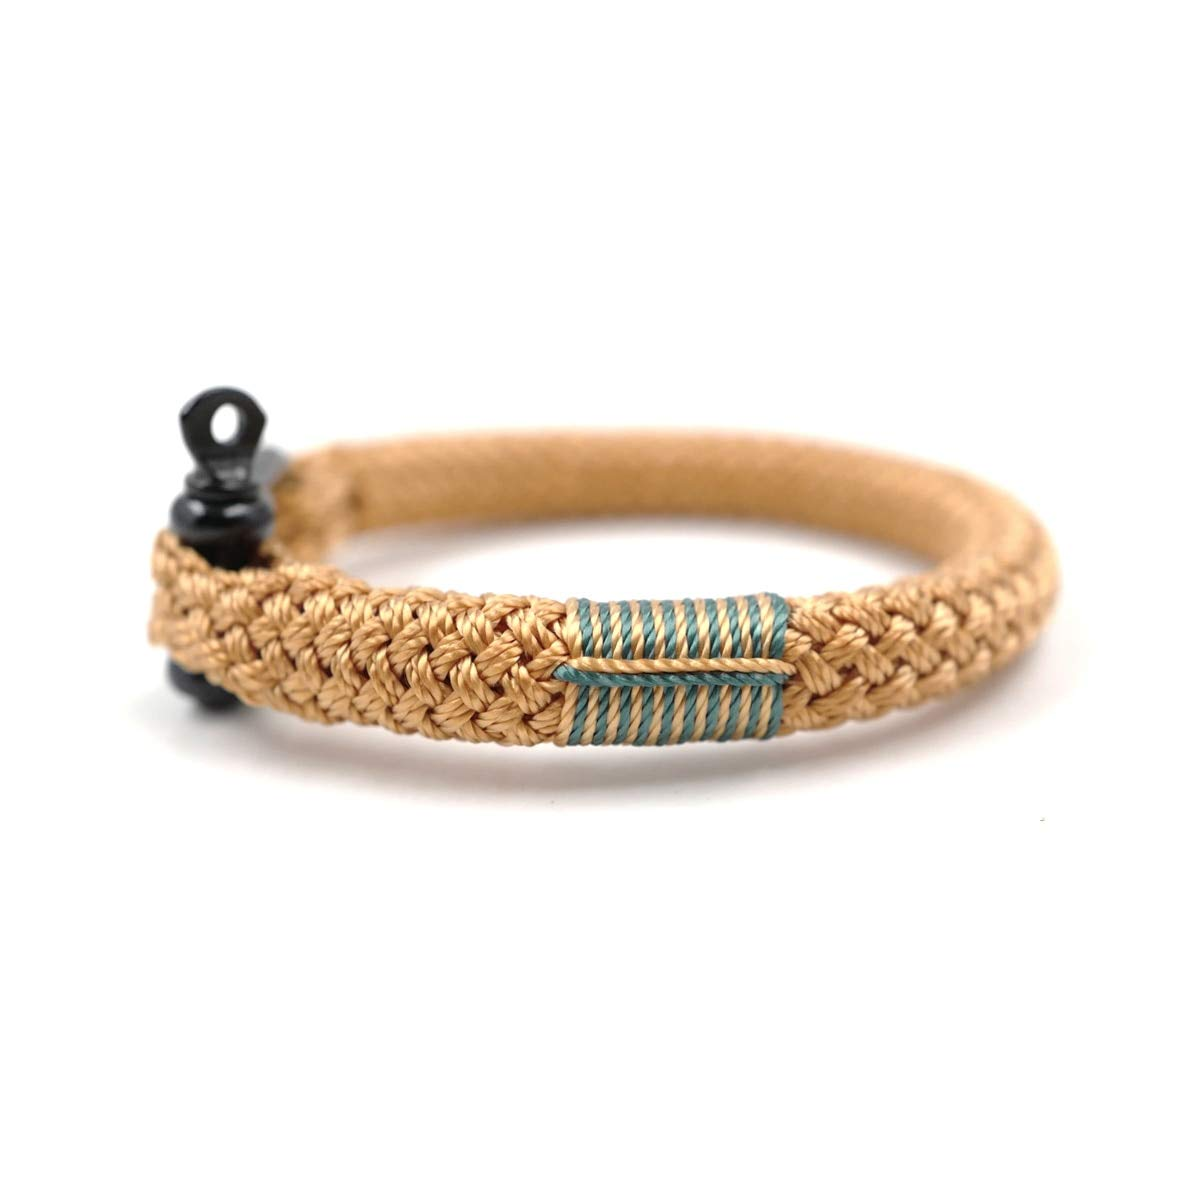 TTHER Nautical Rope Ladder - Gold Hand-Made Nautical Braided Bracelet Yachting Rope Military Paracord Bracelet Wristband with D-Shackle by TTHER